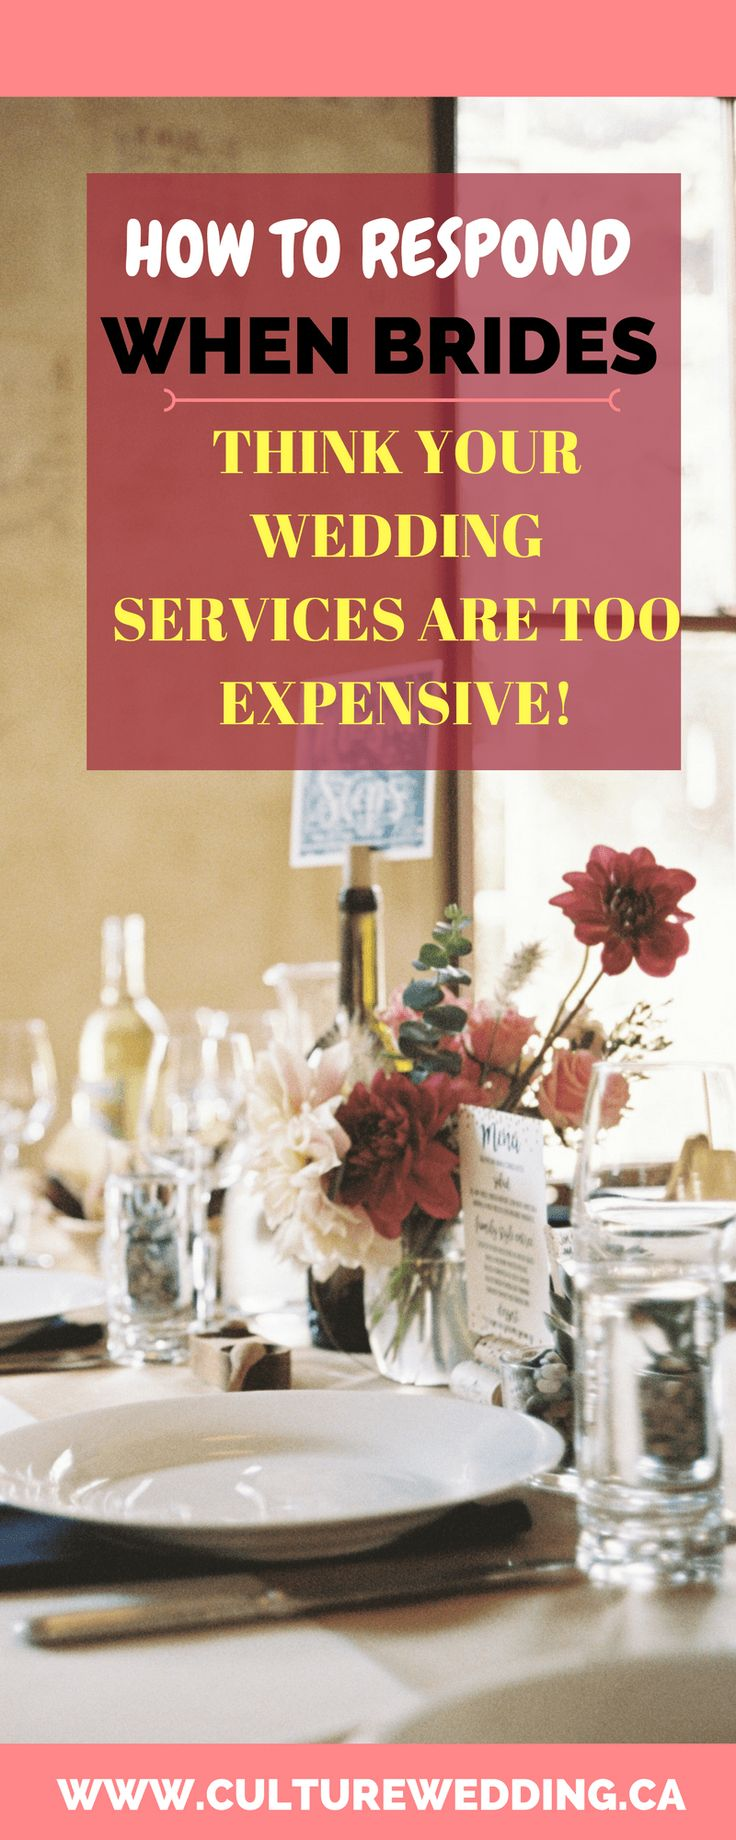 When a brides refuses to pay for your wedding services, wedding planners, wedding planners checklist, book more weddings, how to book more weddings for my wedding business, book more weddings, wedding planning ideas, how to get clients wedding planner, ho